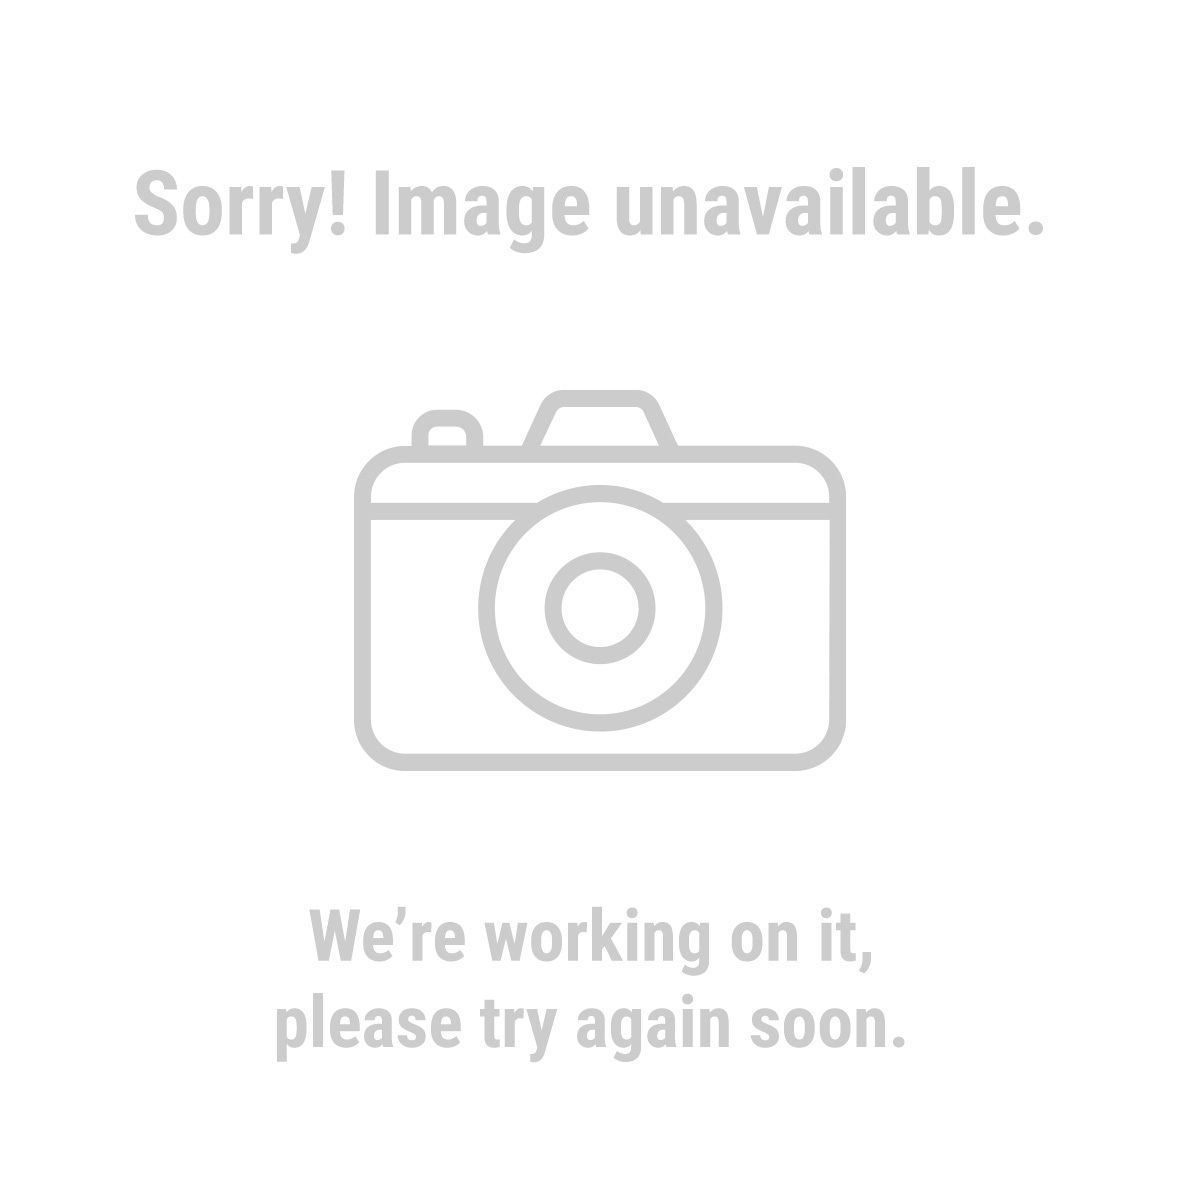 Storehouse® 67692 60 Piece AGC Glass Automotive Fuse Set